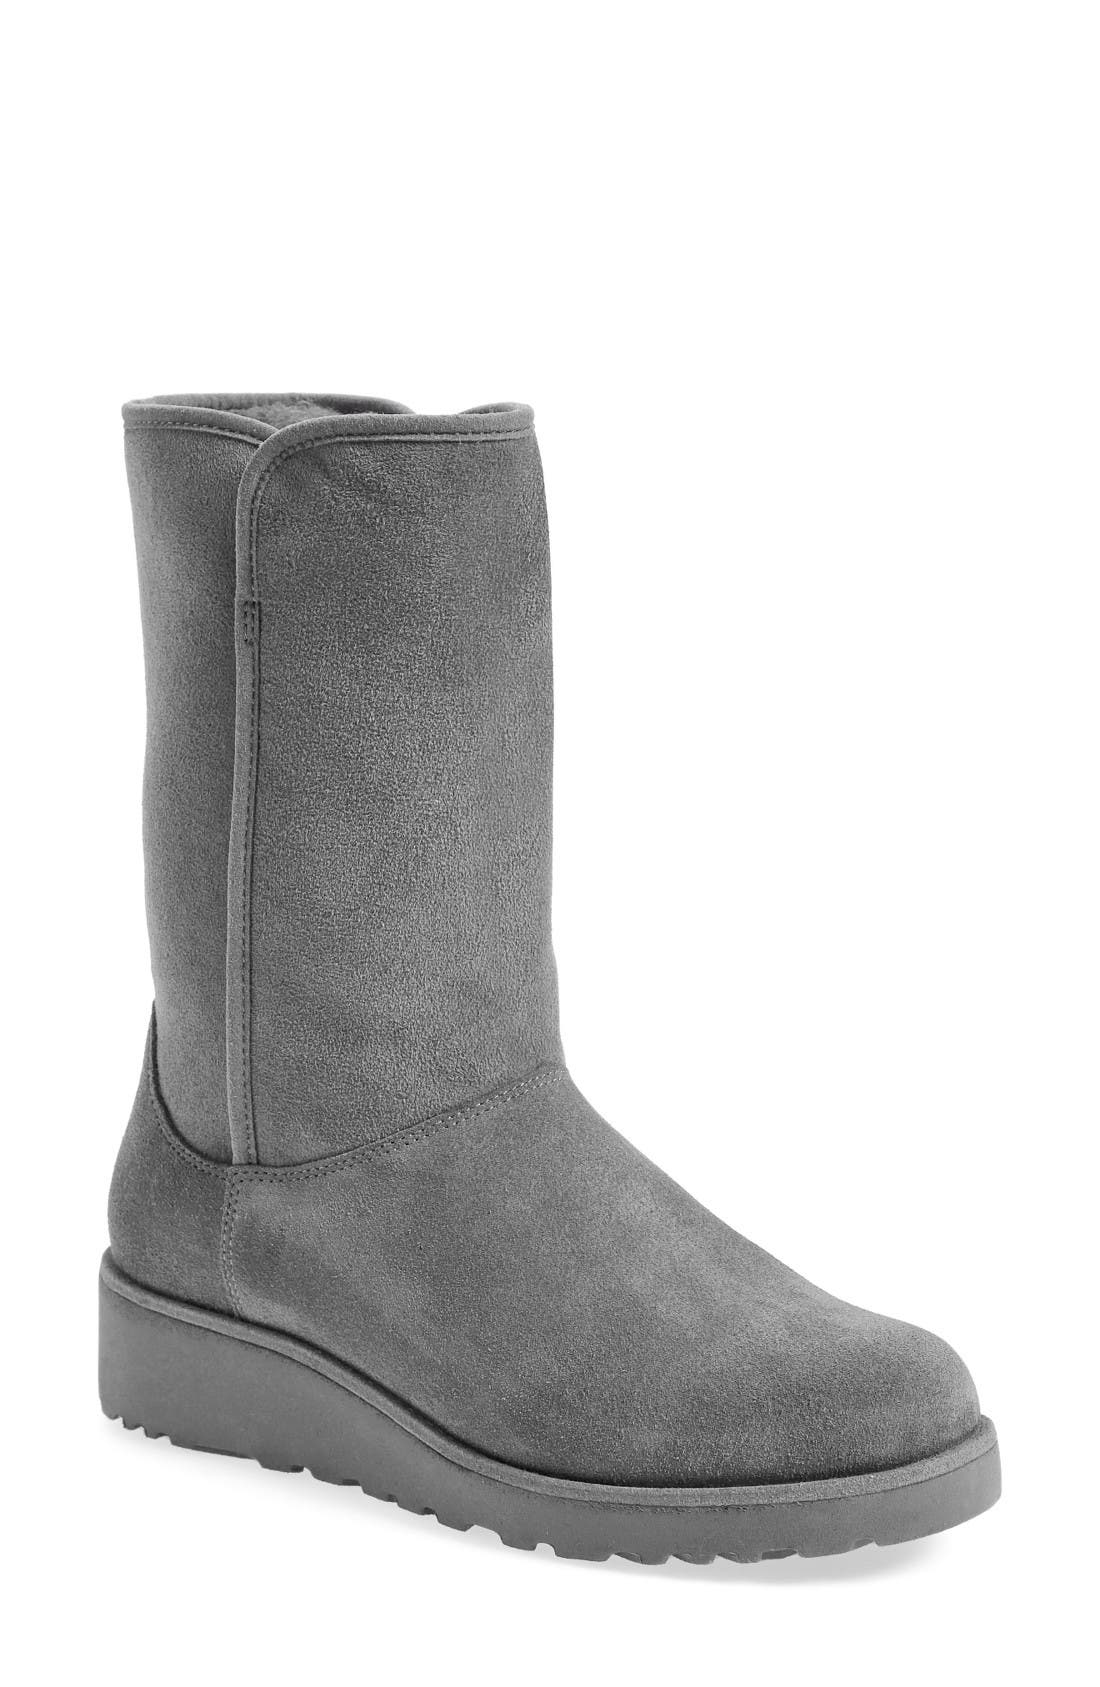 Amie - Classic Slim<sup>™</sup> Water Resistant Short Boot,                             Main thumbnail 1, color,                             GREY SUEDE